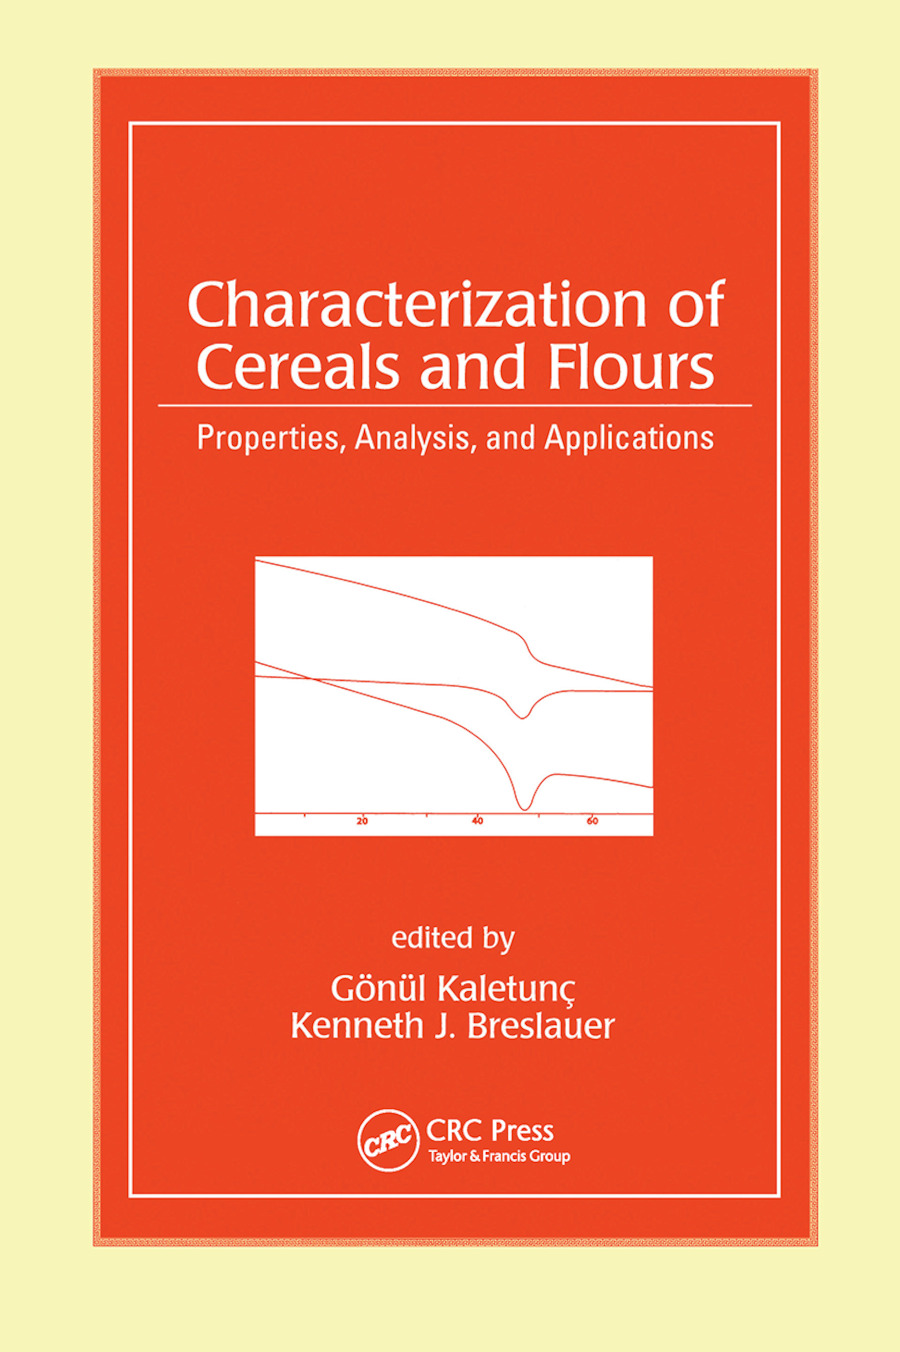 Characterization of Cereals and Flours